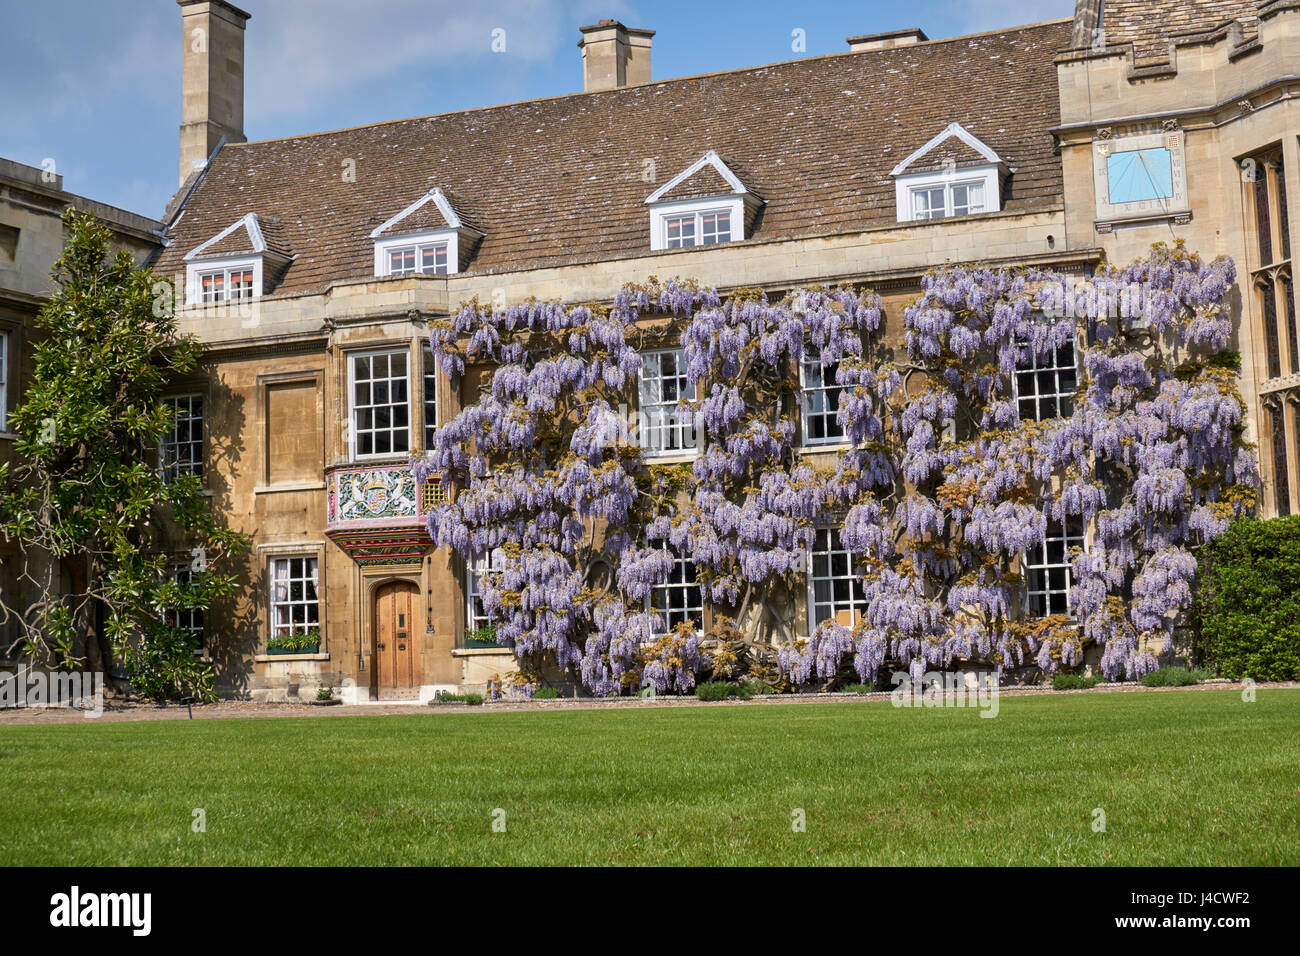 Wisteria in flower on the wall of the Master's Lodge and Hall, First Court, Christ's College Cambridge - Stock Image